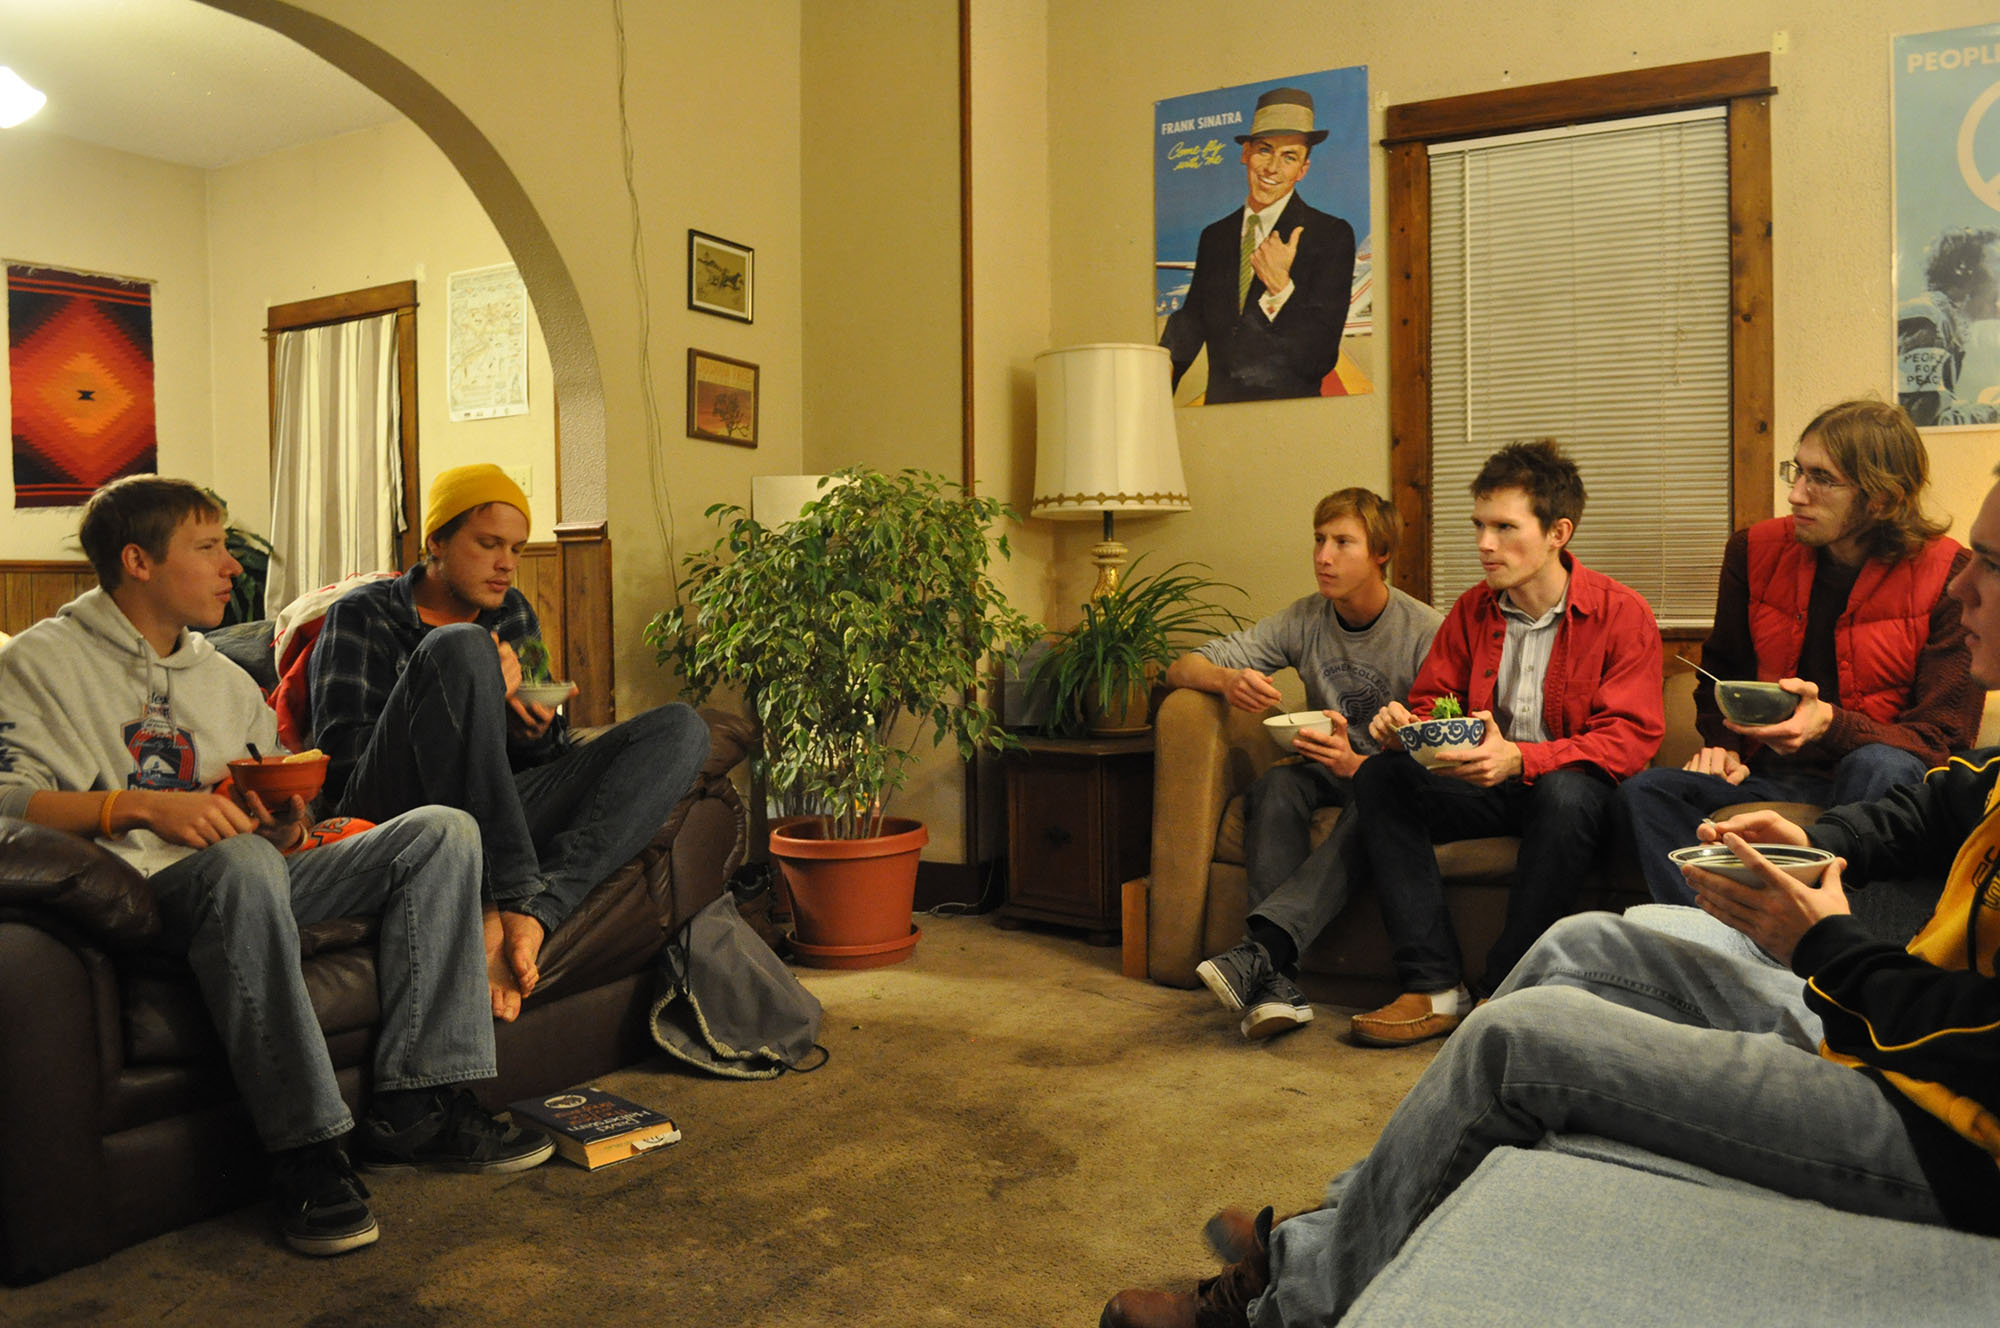 Members of the Social Reform Club sit around a small living room and converse